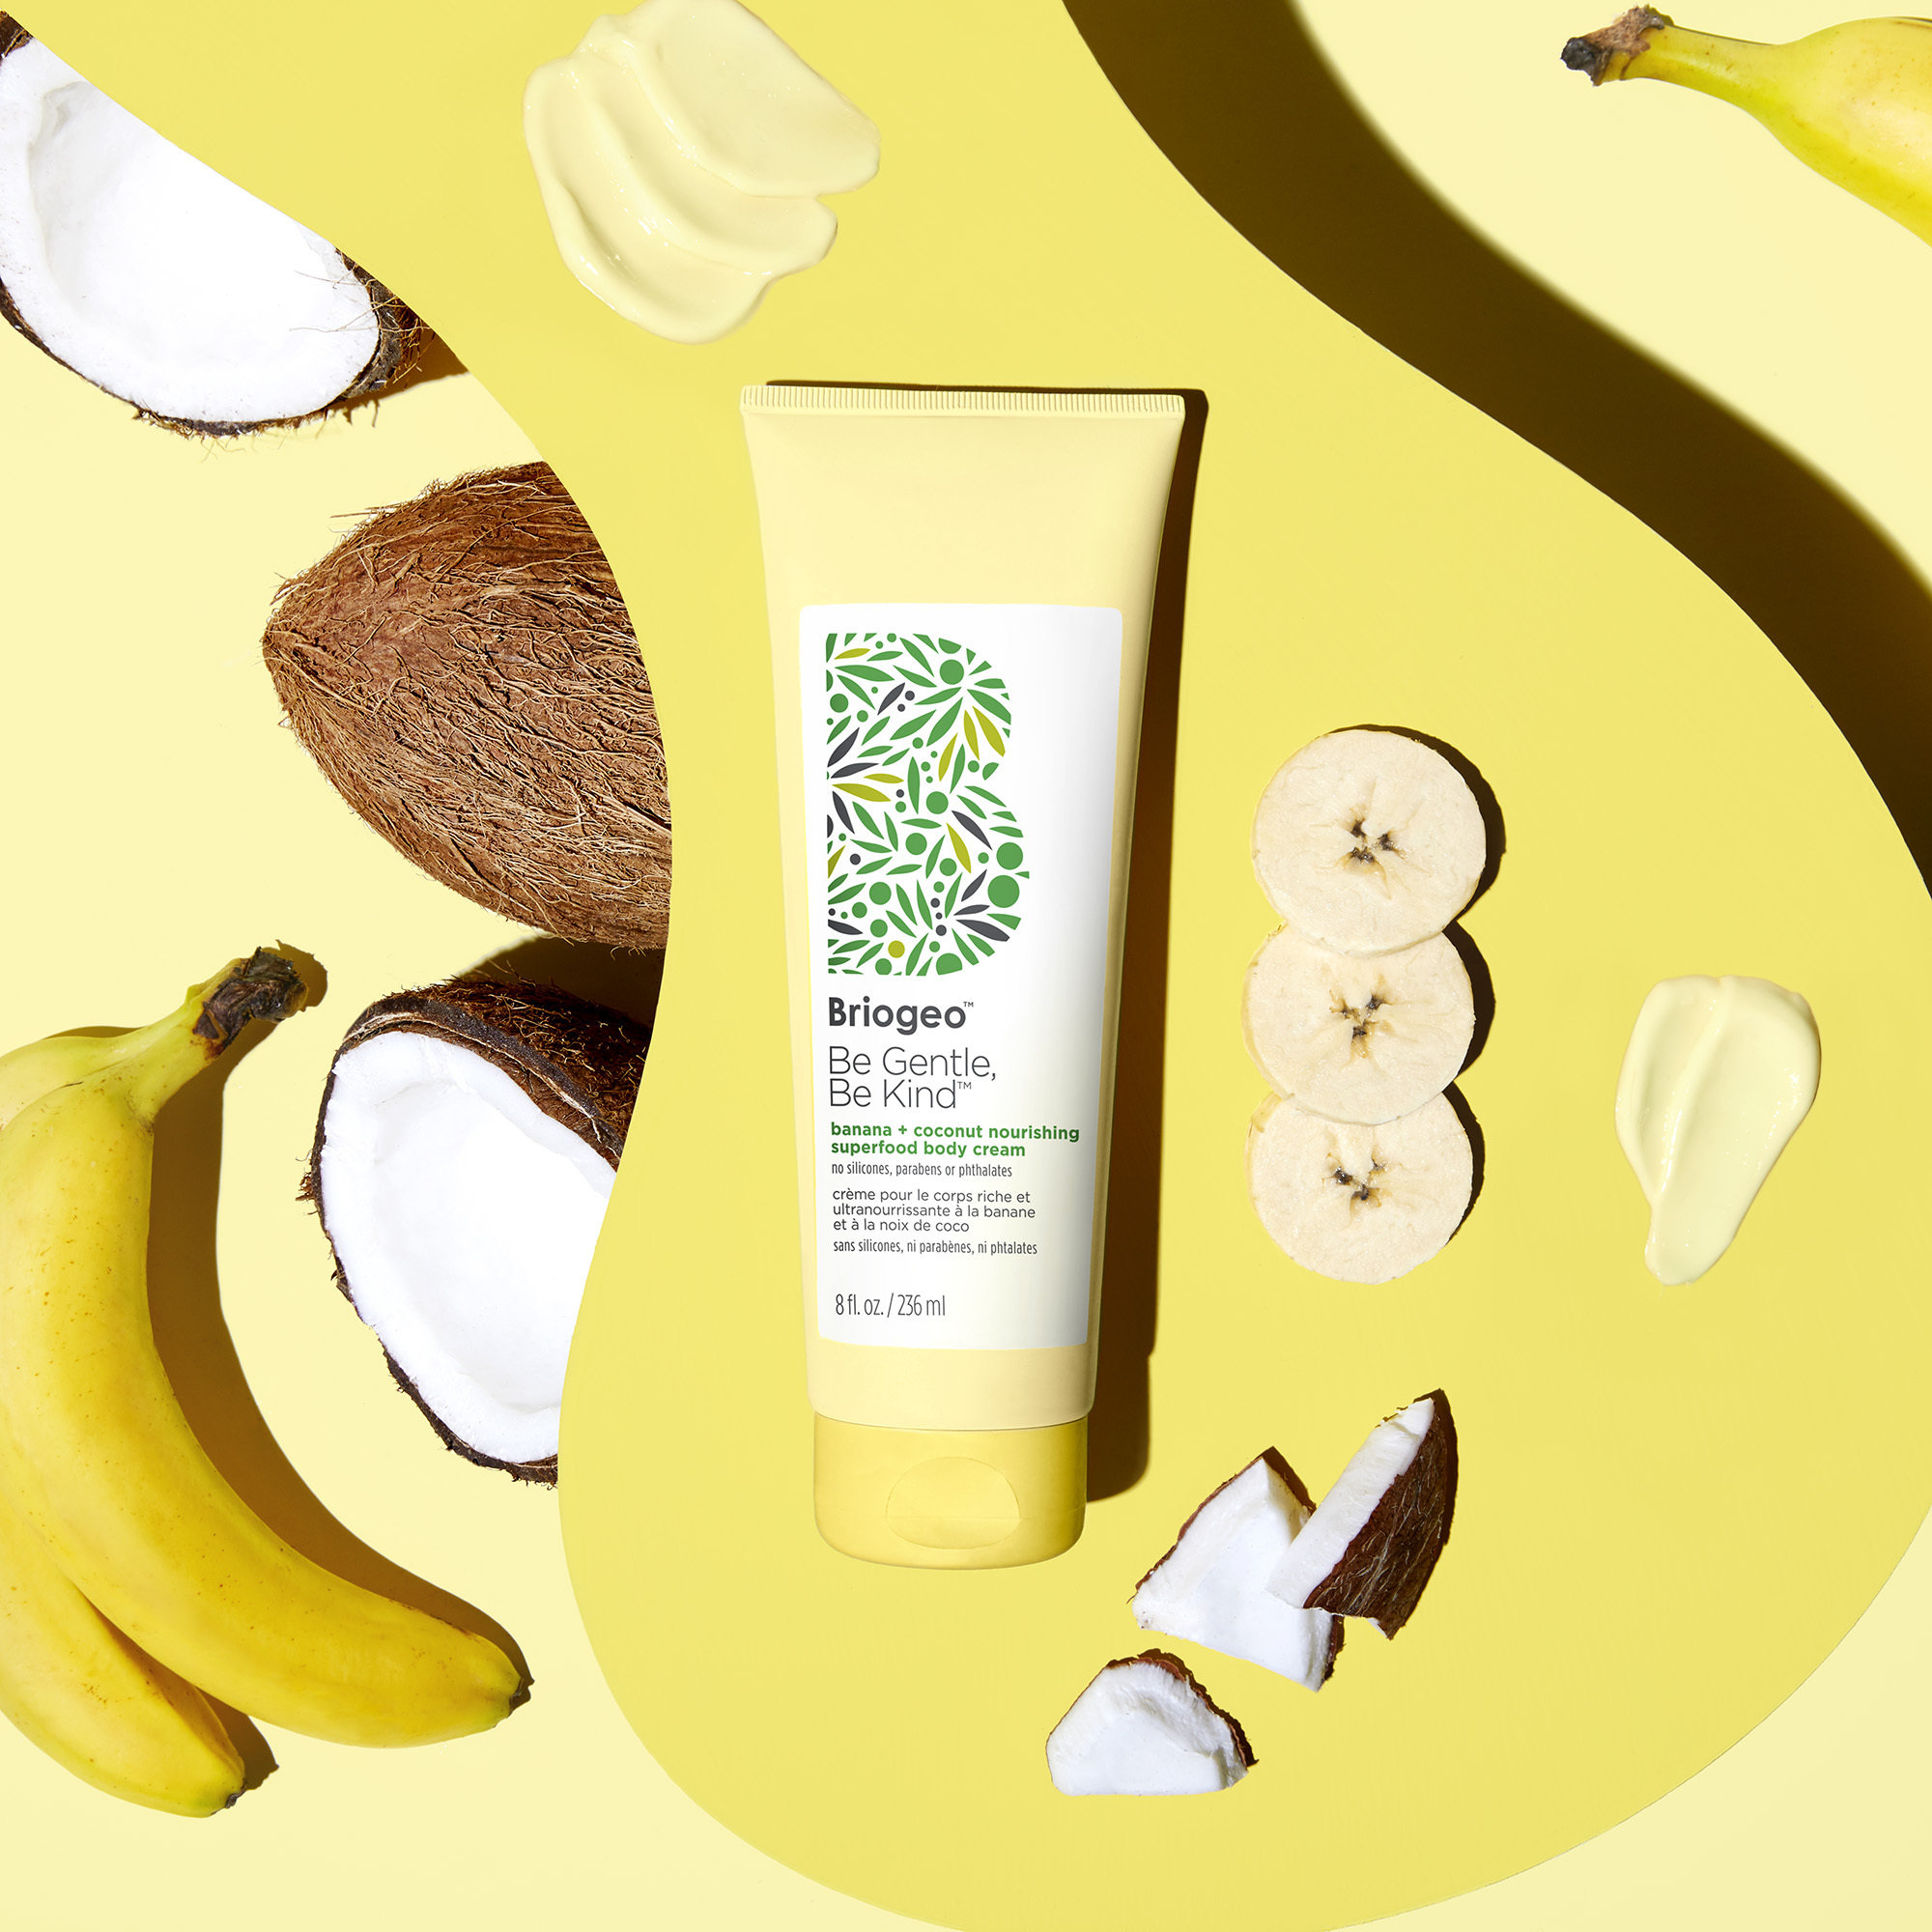 Alternate product image for Be Gentle, Be Kind Banana + Coconut Nourishing Superfoods Body Cream shown with the description.